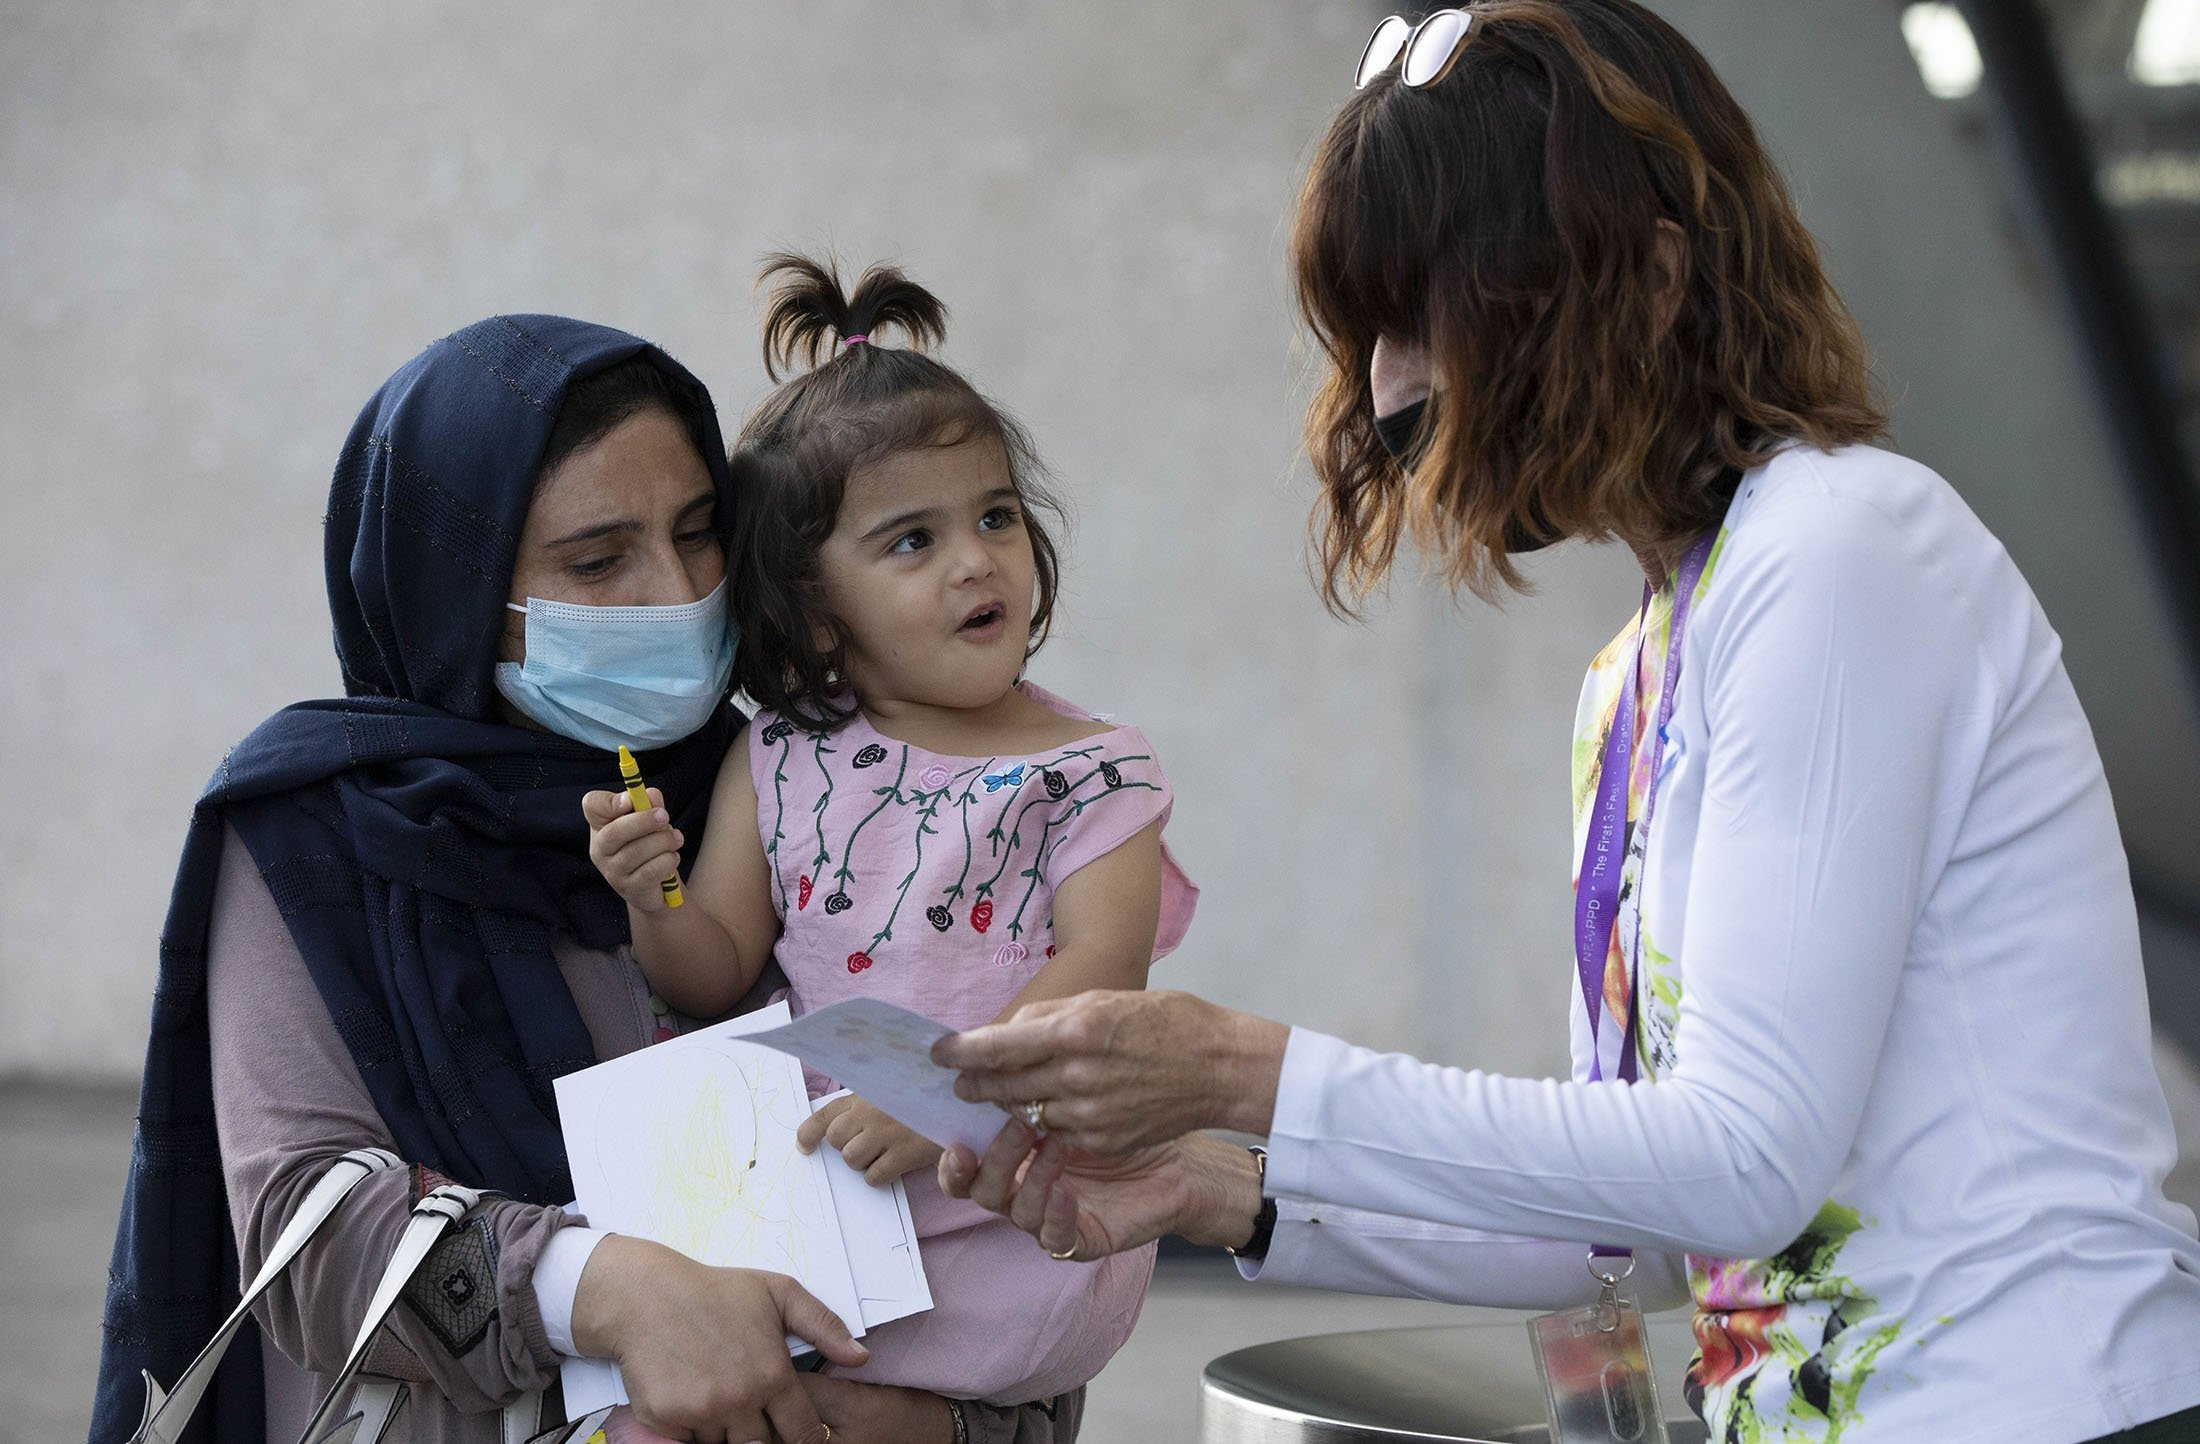 A volunteer interacts with a child evacuated from Kabul, Afghanistan at Washington Dulles International Airport, in Chantilly, Virginia, U.S., Aug. 28, 2021. (AP Photo)